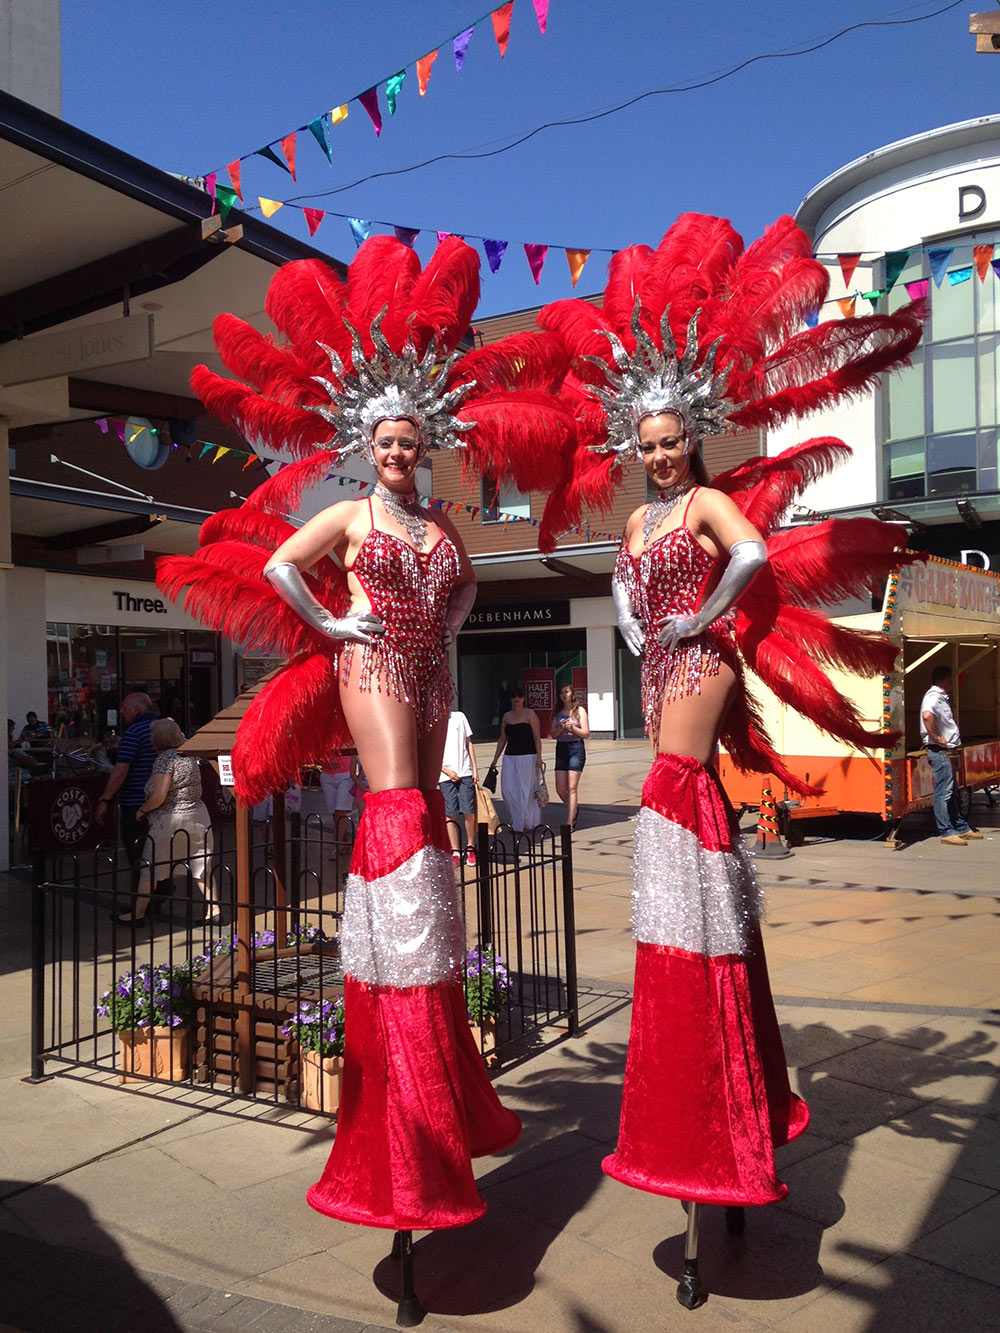 Carnival Theme - Stilt Walkers